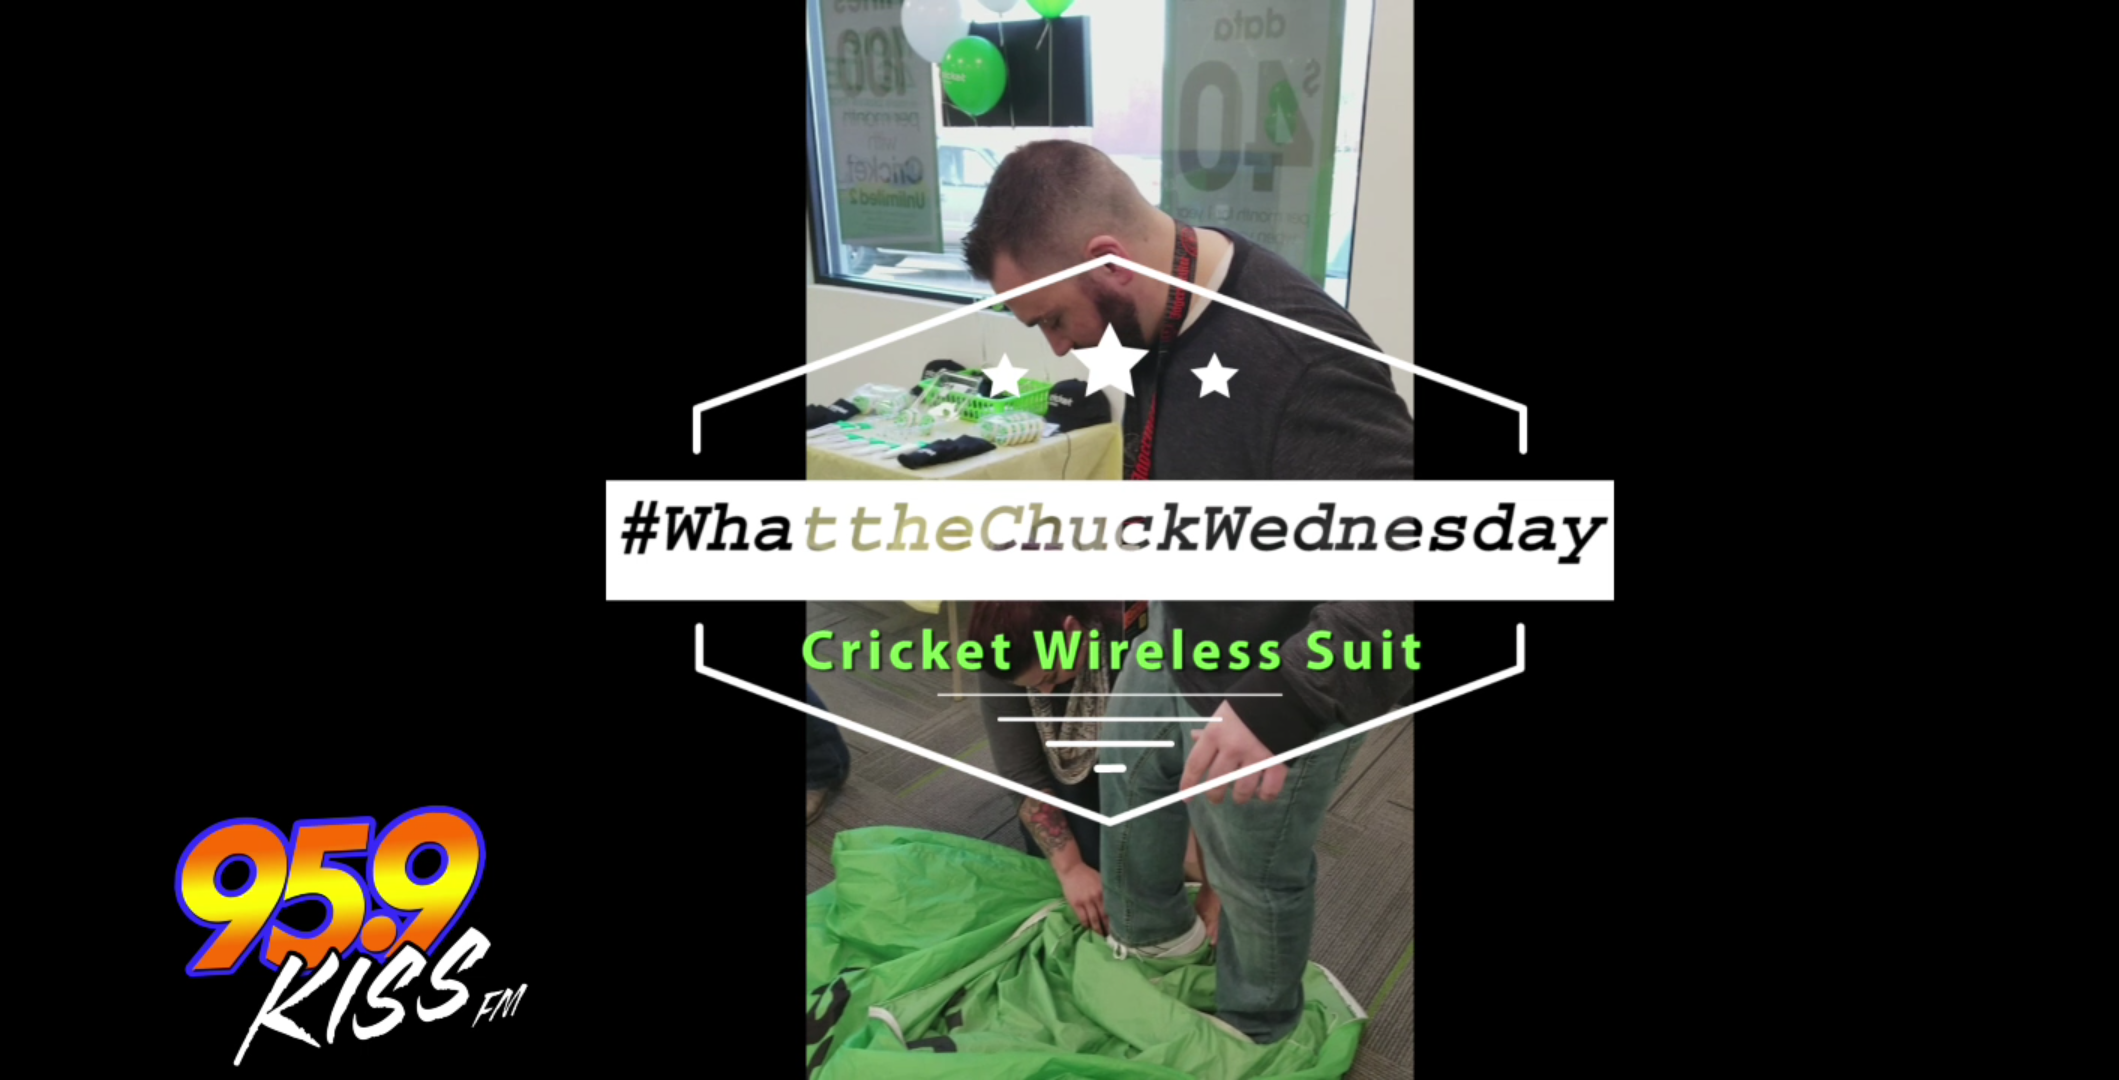 #WhattheChuckWednesday - Cricket Wireless Suit